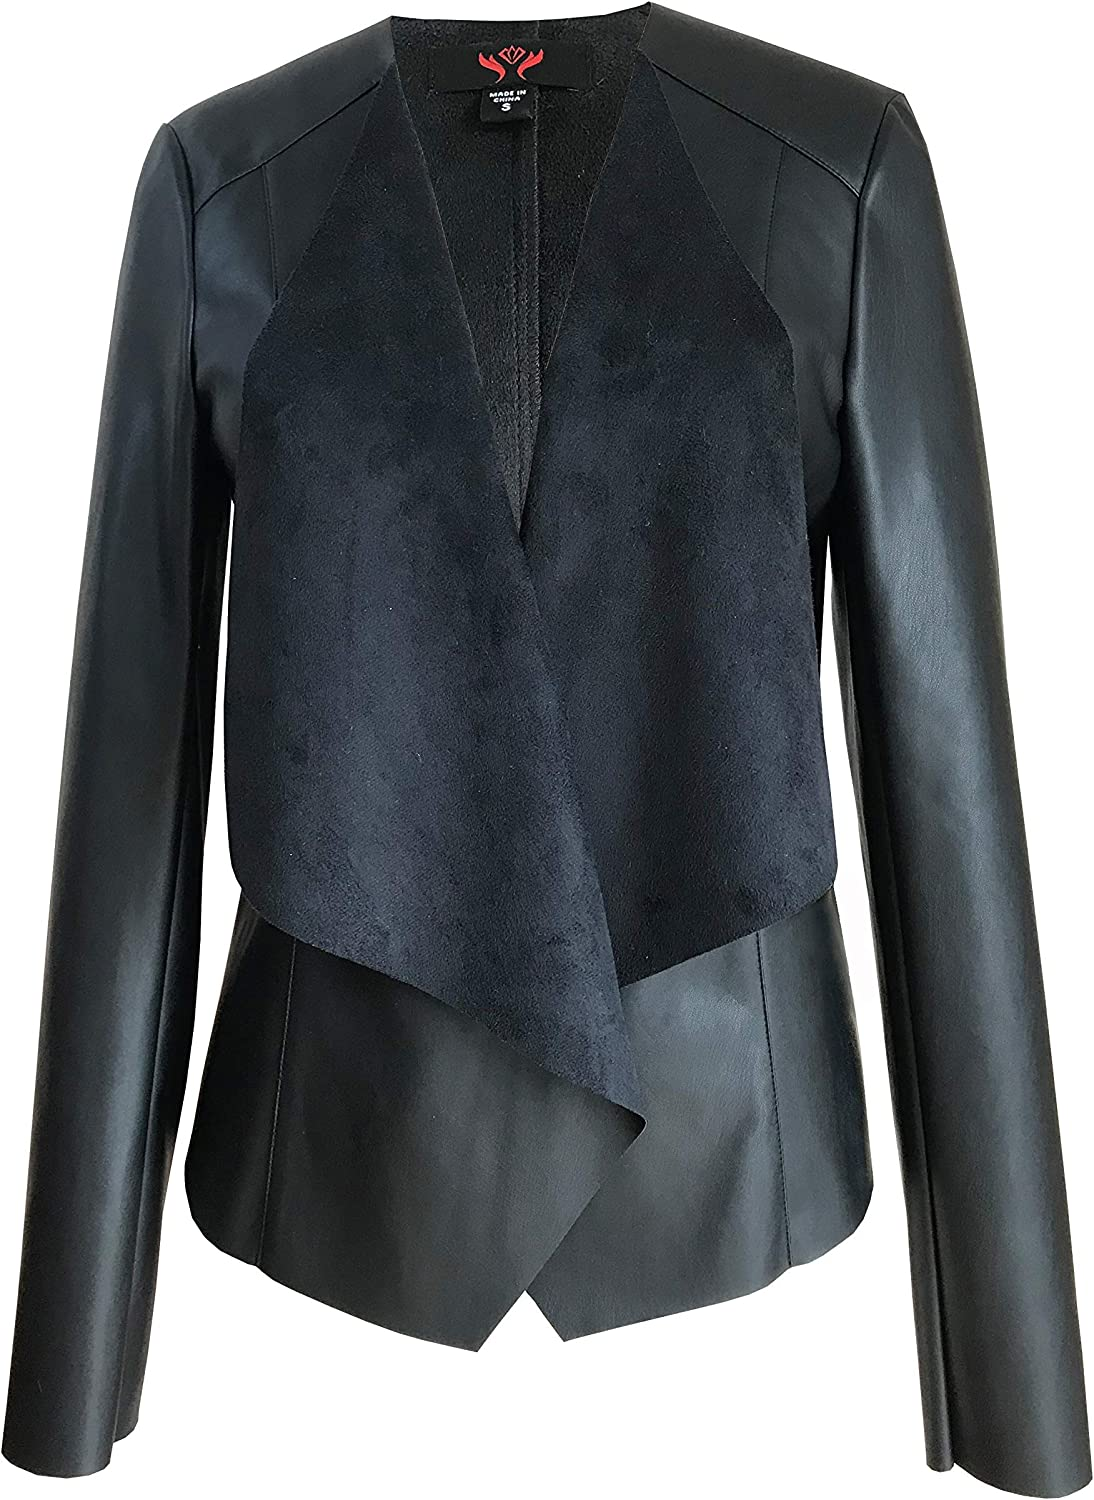 ABO Gear Fixed price for sale Leather Latest item Jacket Women Womens Jack